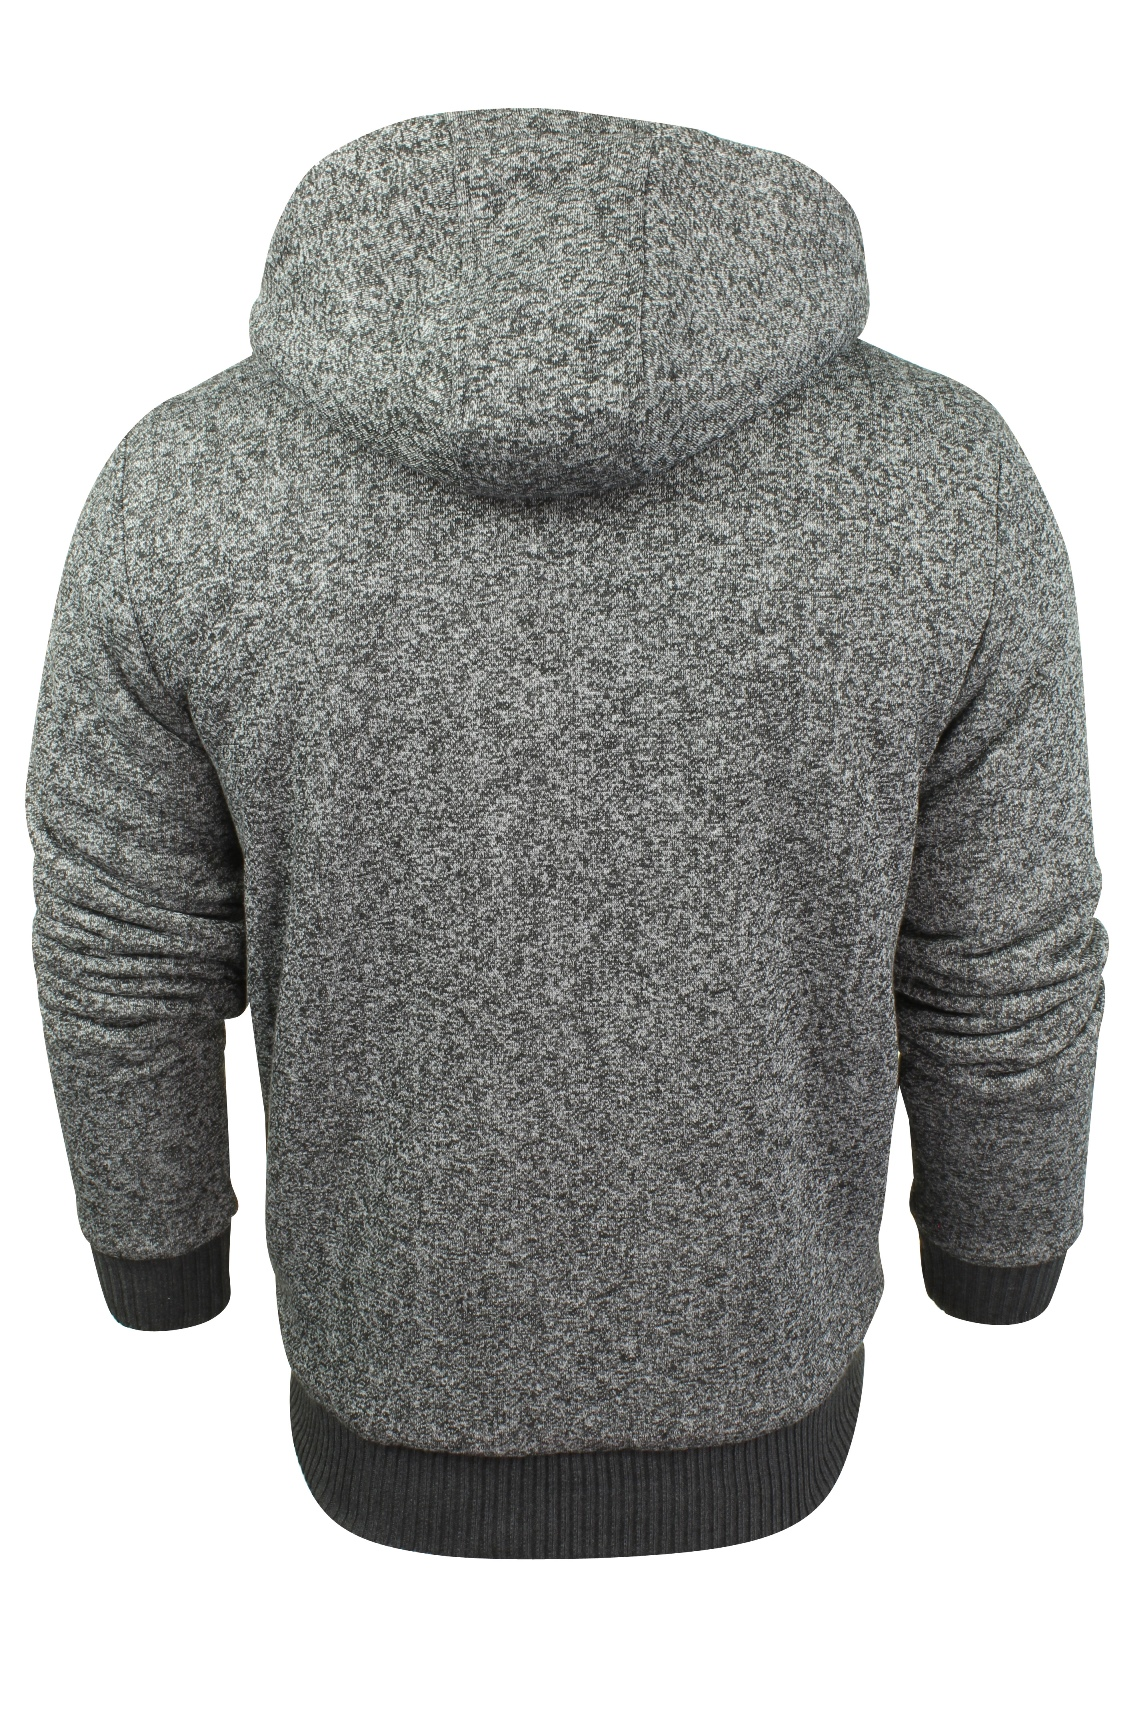 Mens-Dissident-Hoodie-Sweatshirt-Jumper-Jacket-039-Toulouse-039-Sherpa-Fleece-Lined thumbnail 16